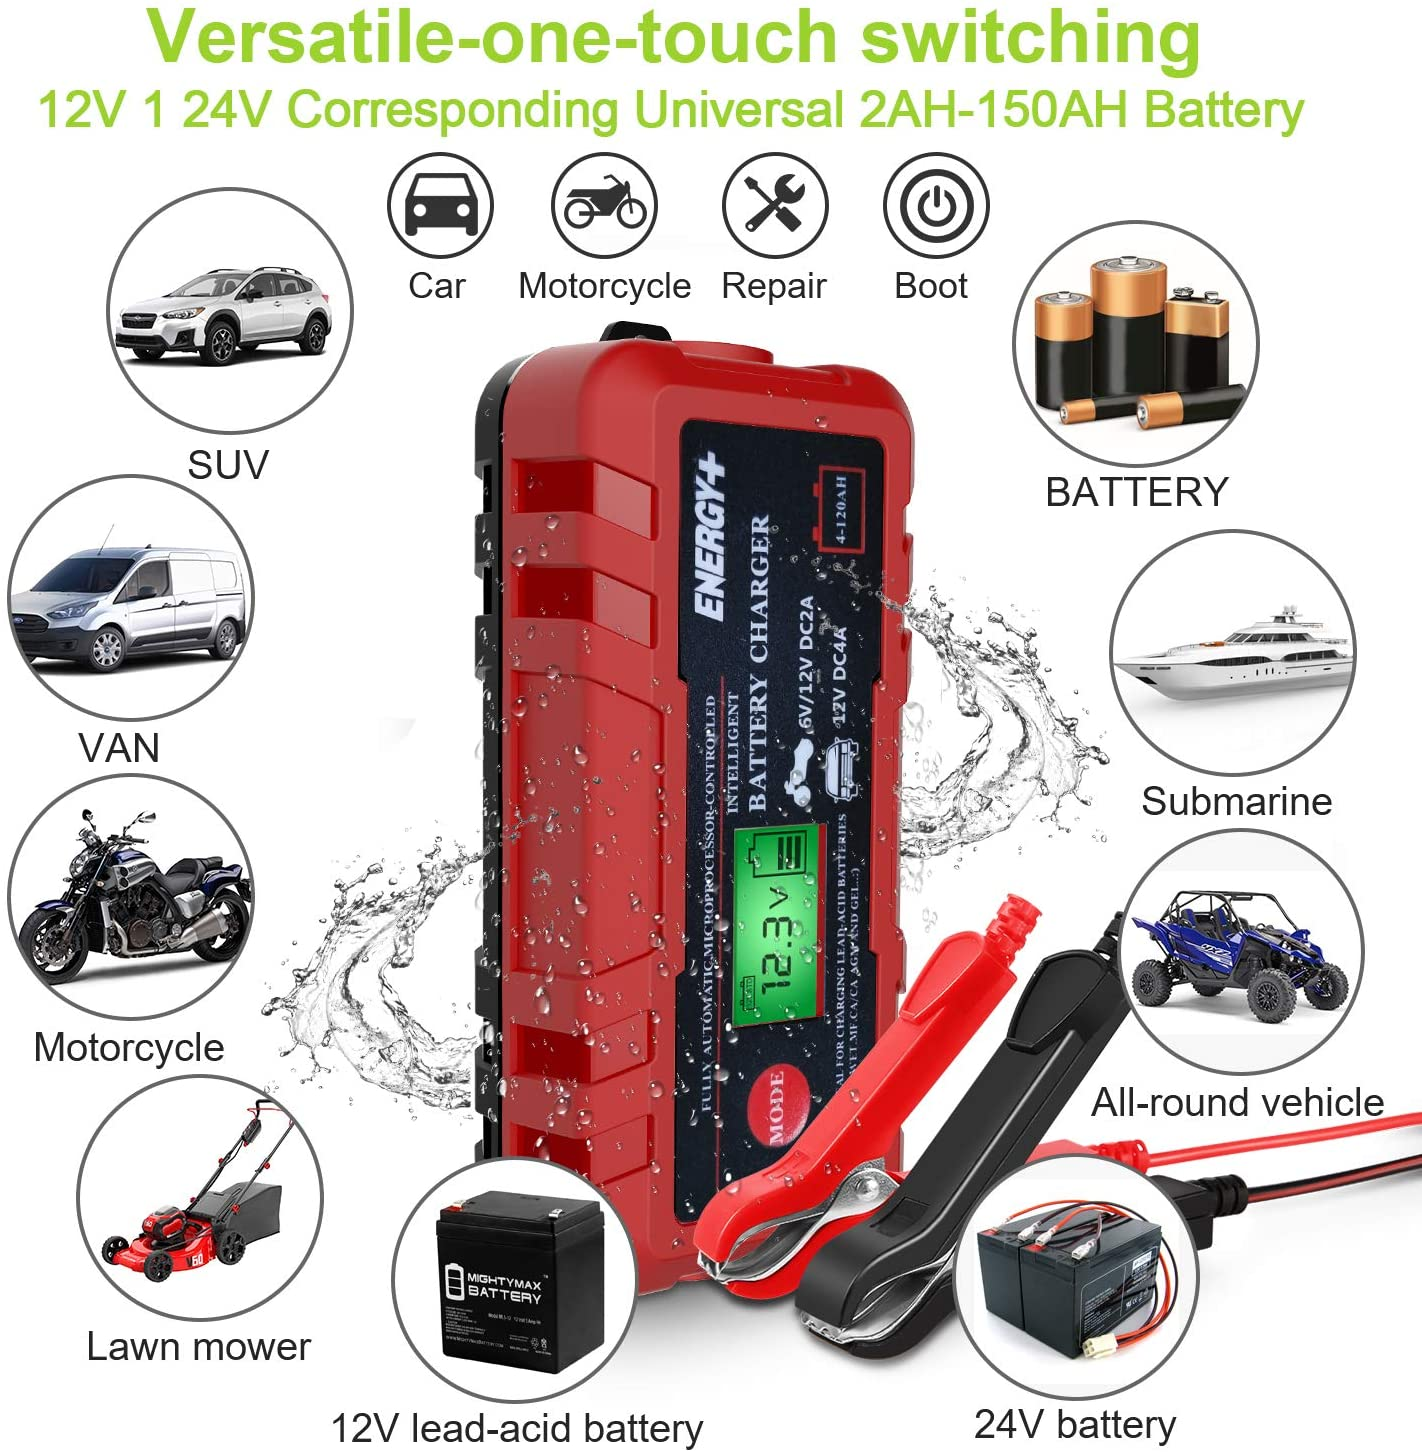 ATV Motorcycle SUV Boat RV Wet Dry Lead Acid Battery-Chargers with Digital LCD Display for Car 12V 6A Smart Battery Charger//Maintainer Kecheer Battery Charger Full Automotive Lawn Mower